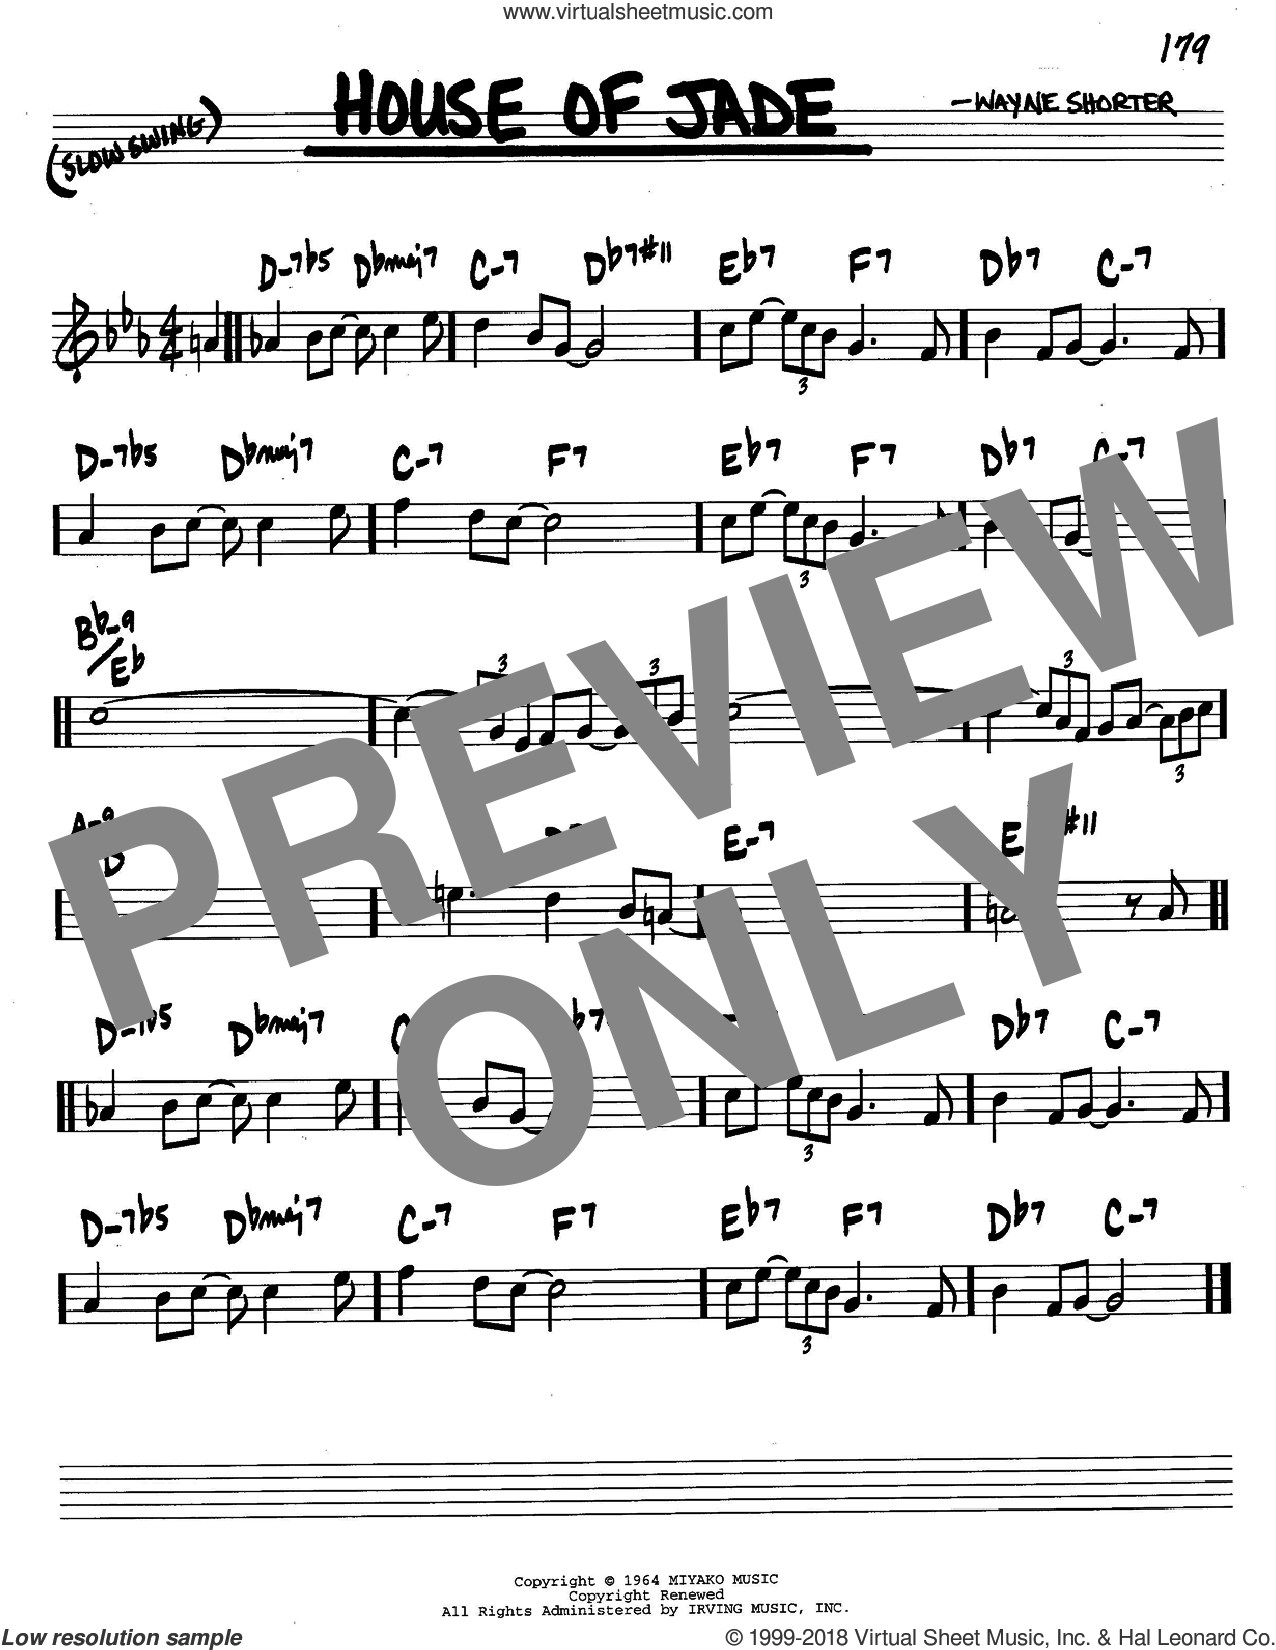 House Of Jade sheet music for voice and other instruments (C) by Wayne Shorter. Score Image Preview.